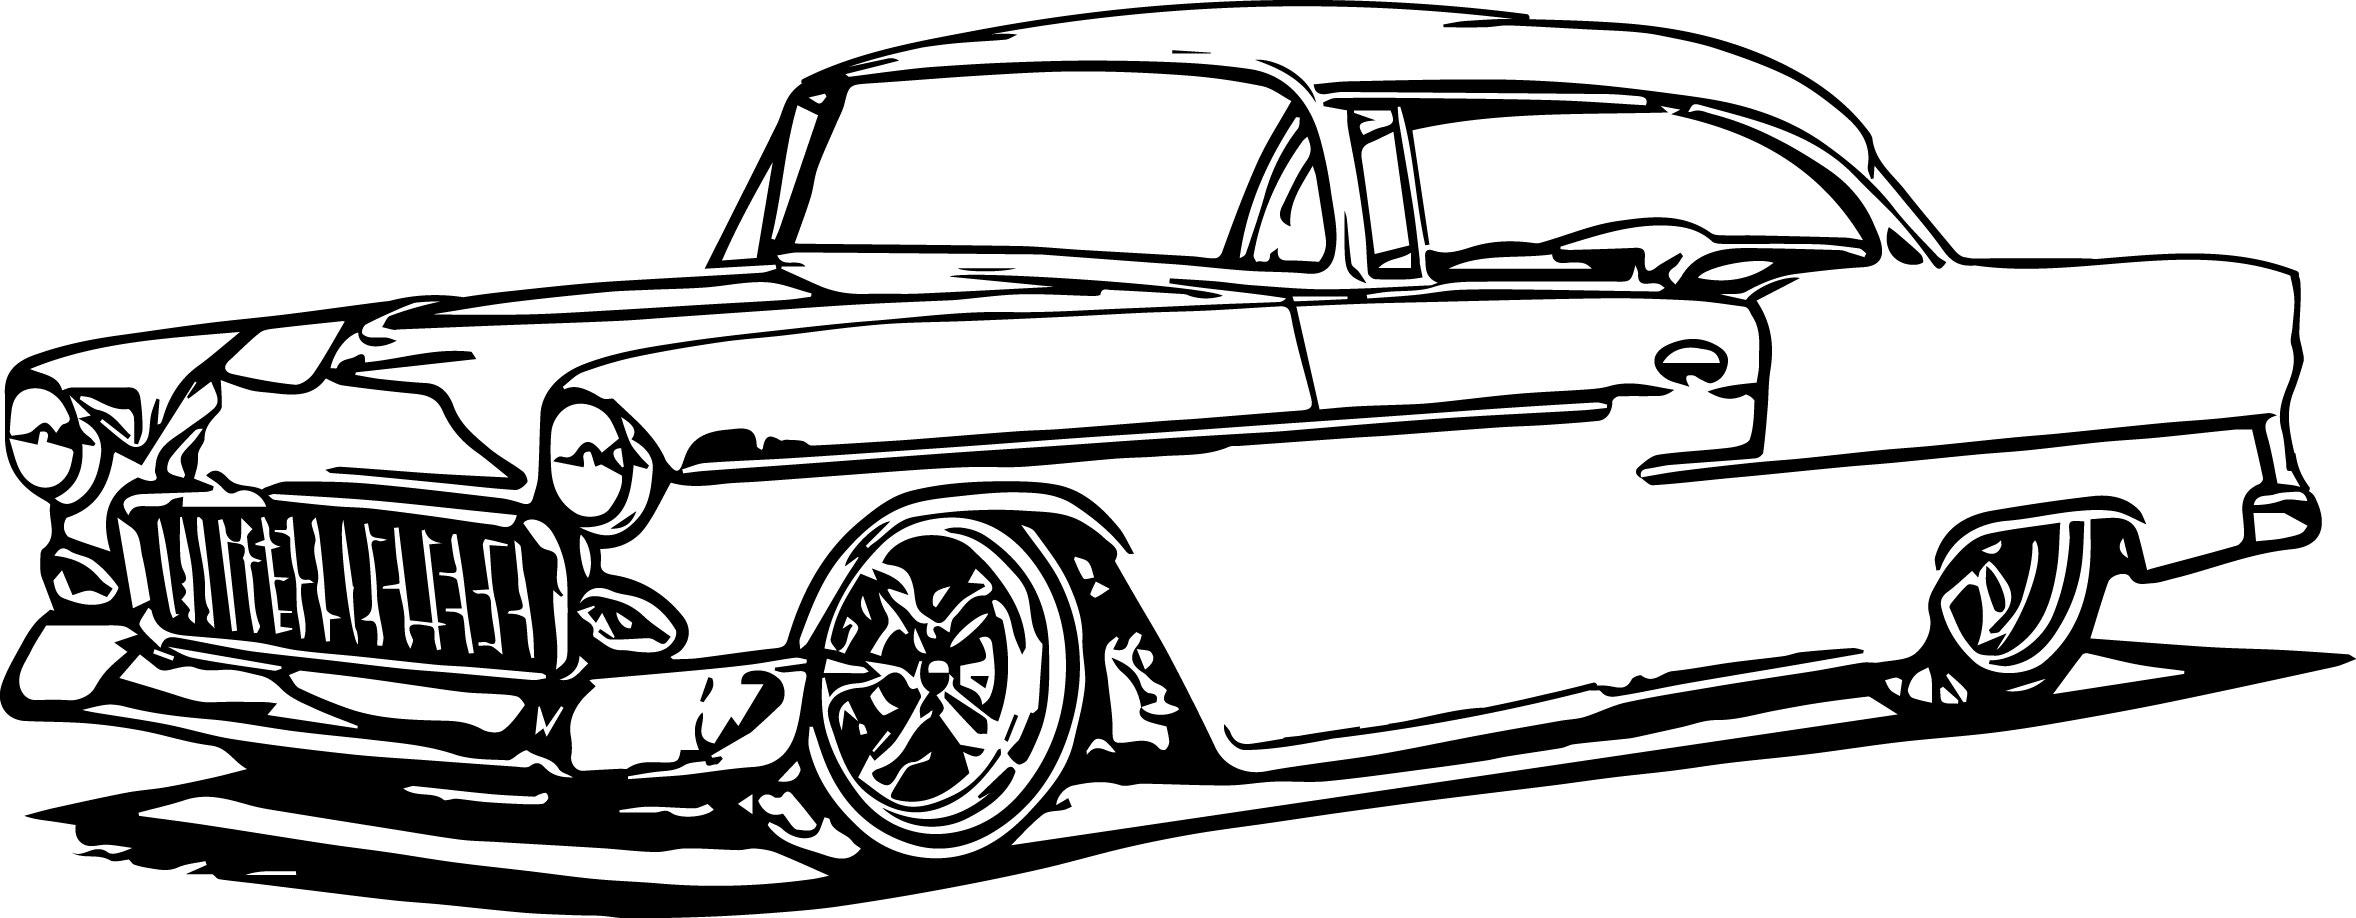 Antique Car Coloring Pages | Wecoloringpage